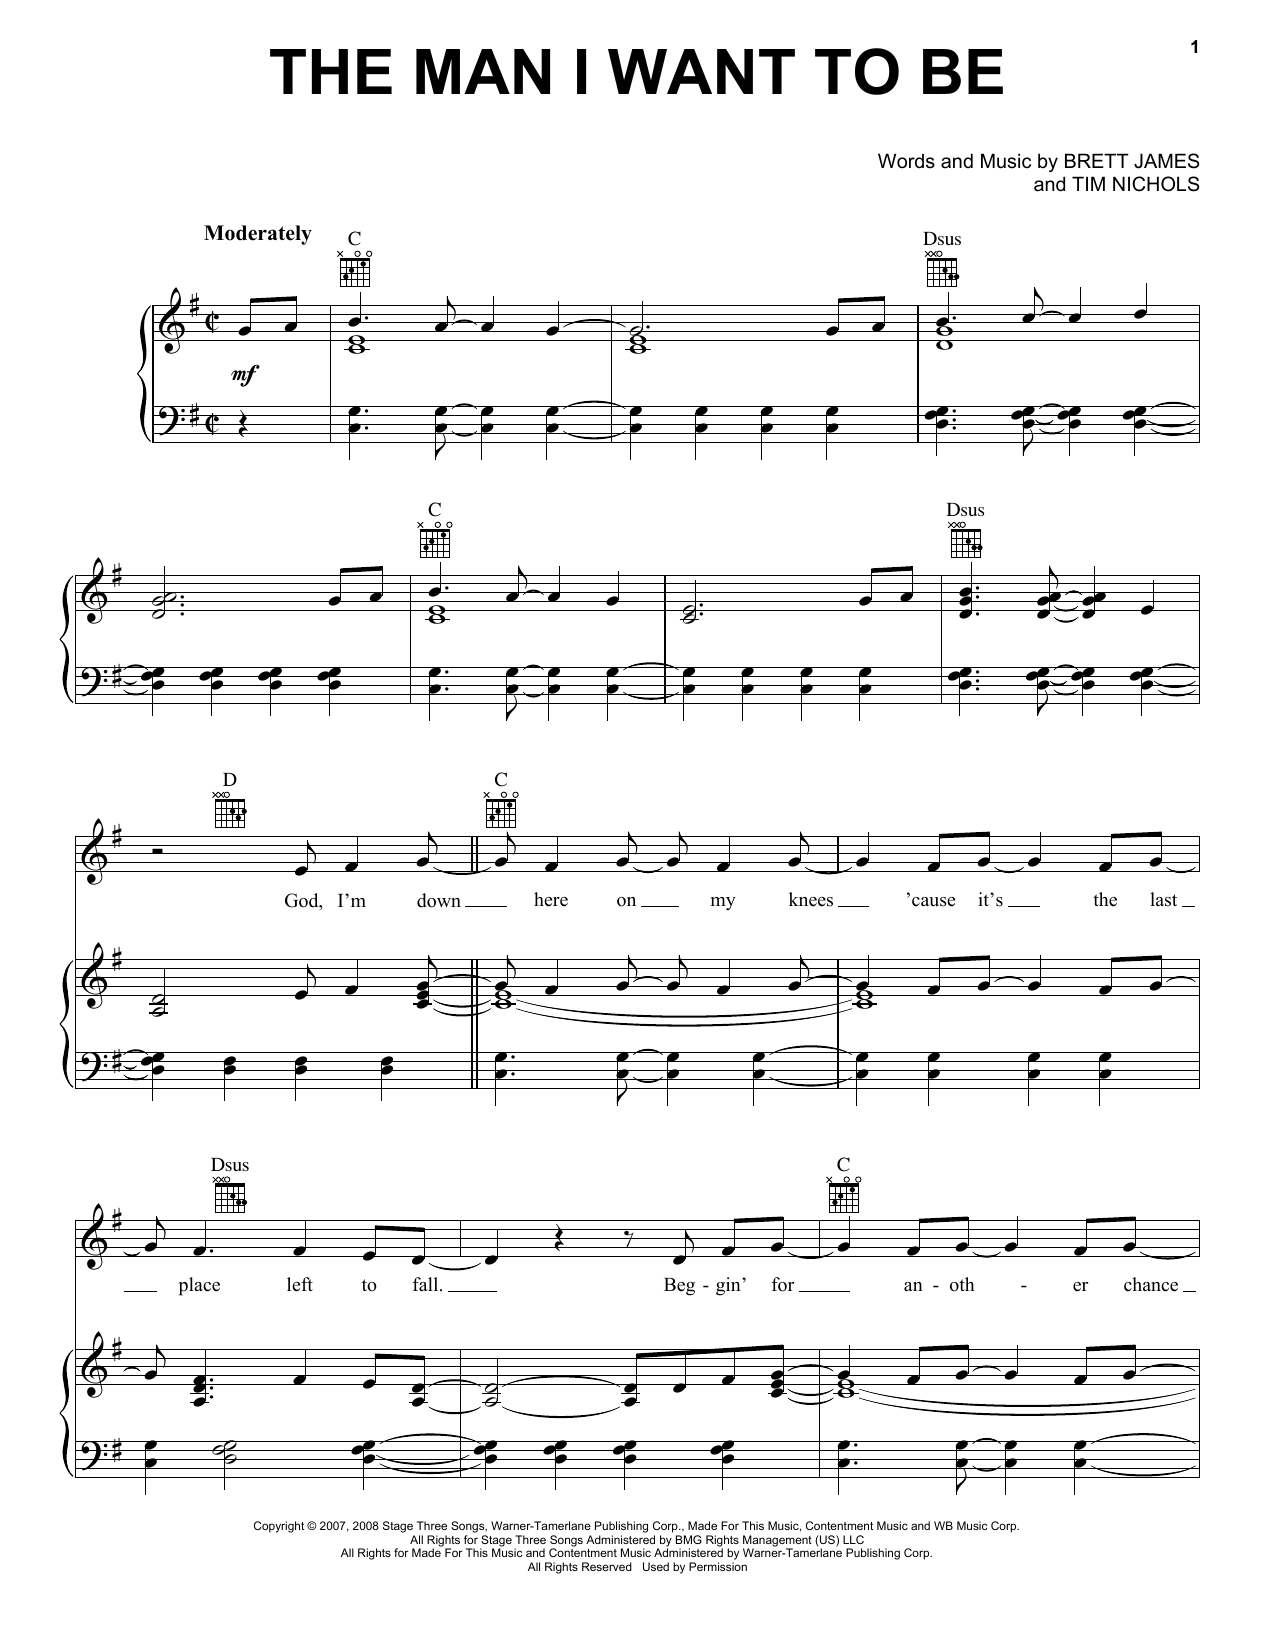 The Man I Want To Be sheet music for voice, piano or guitar by Tim Nichols